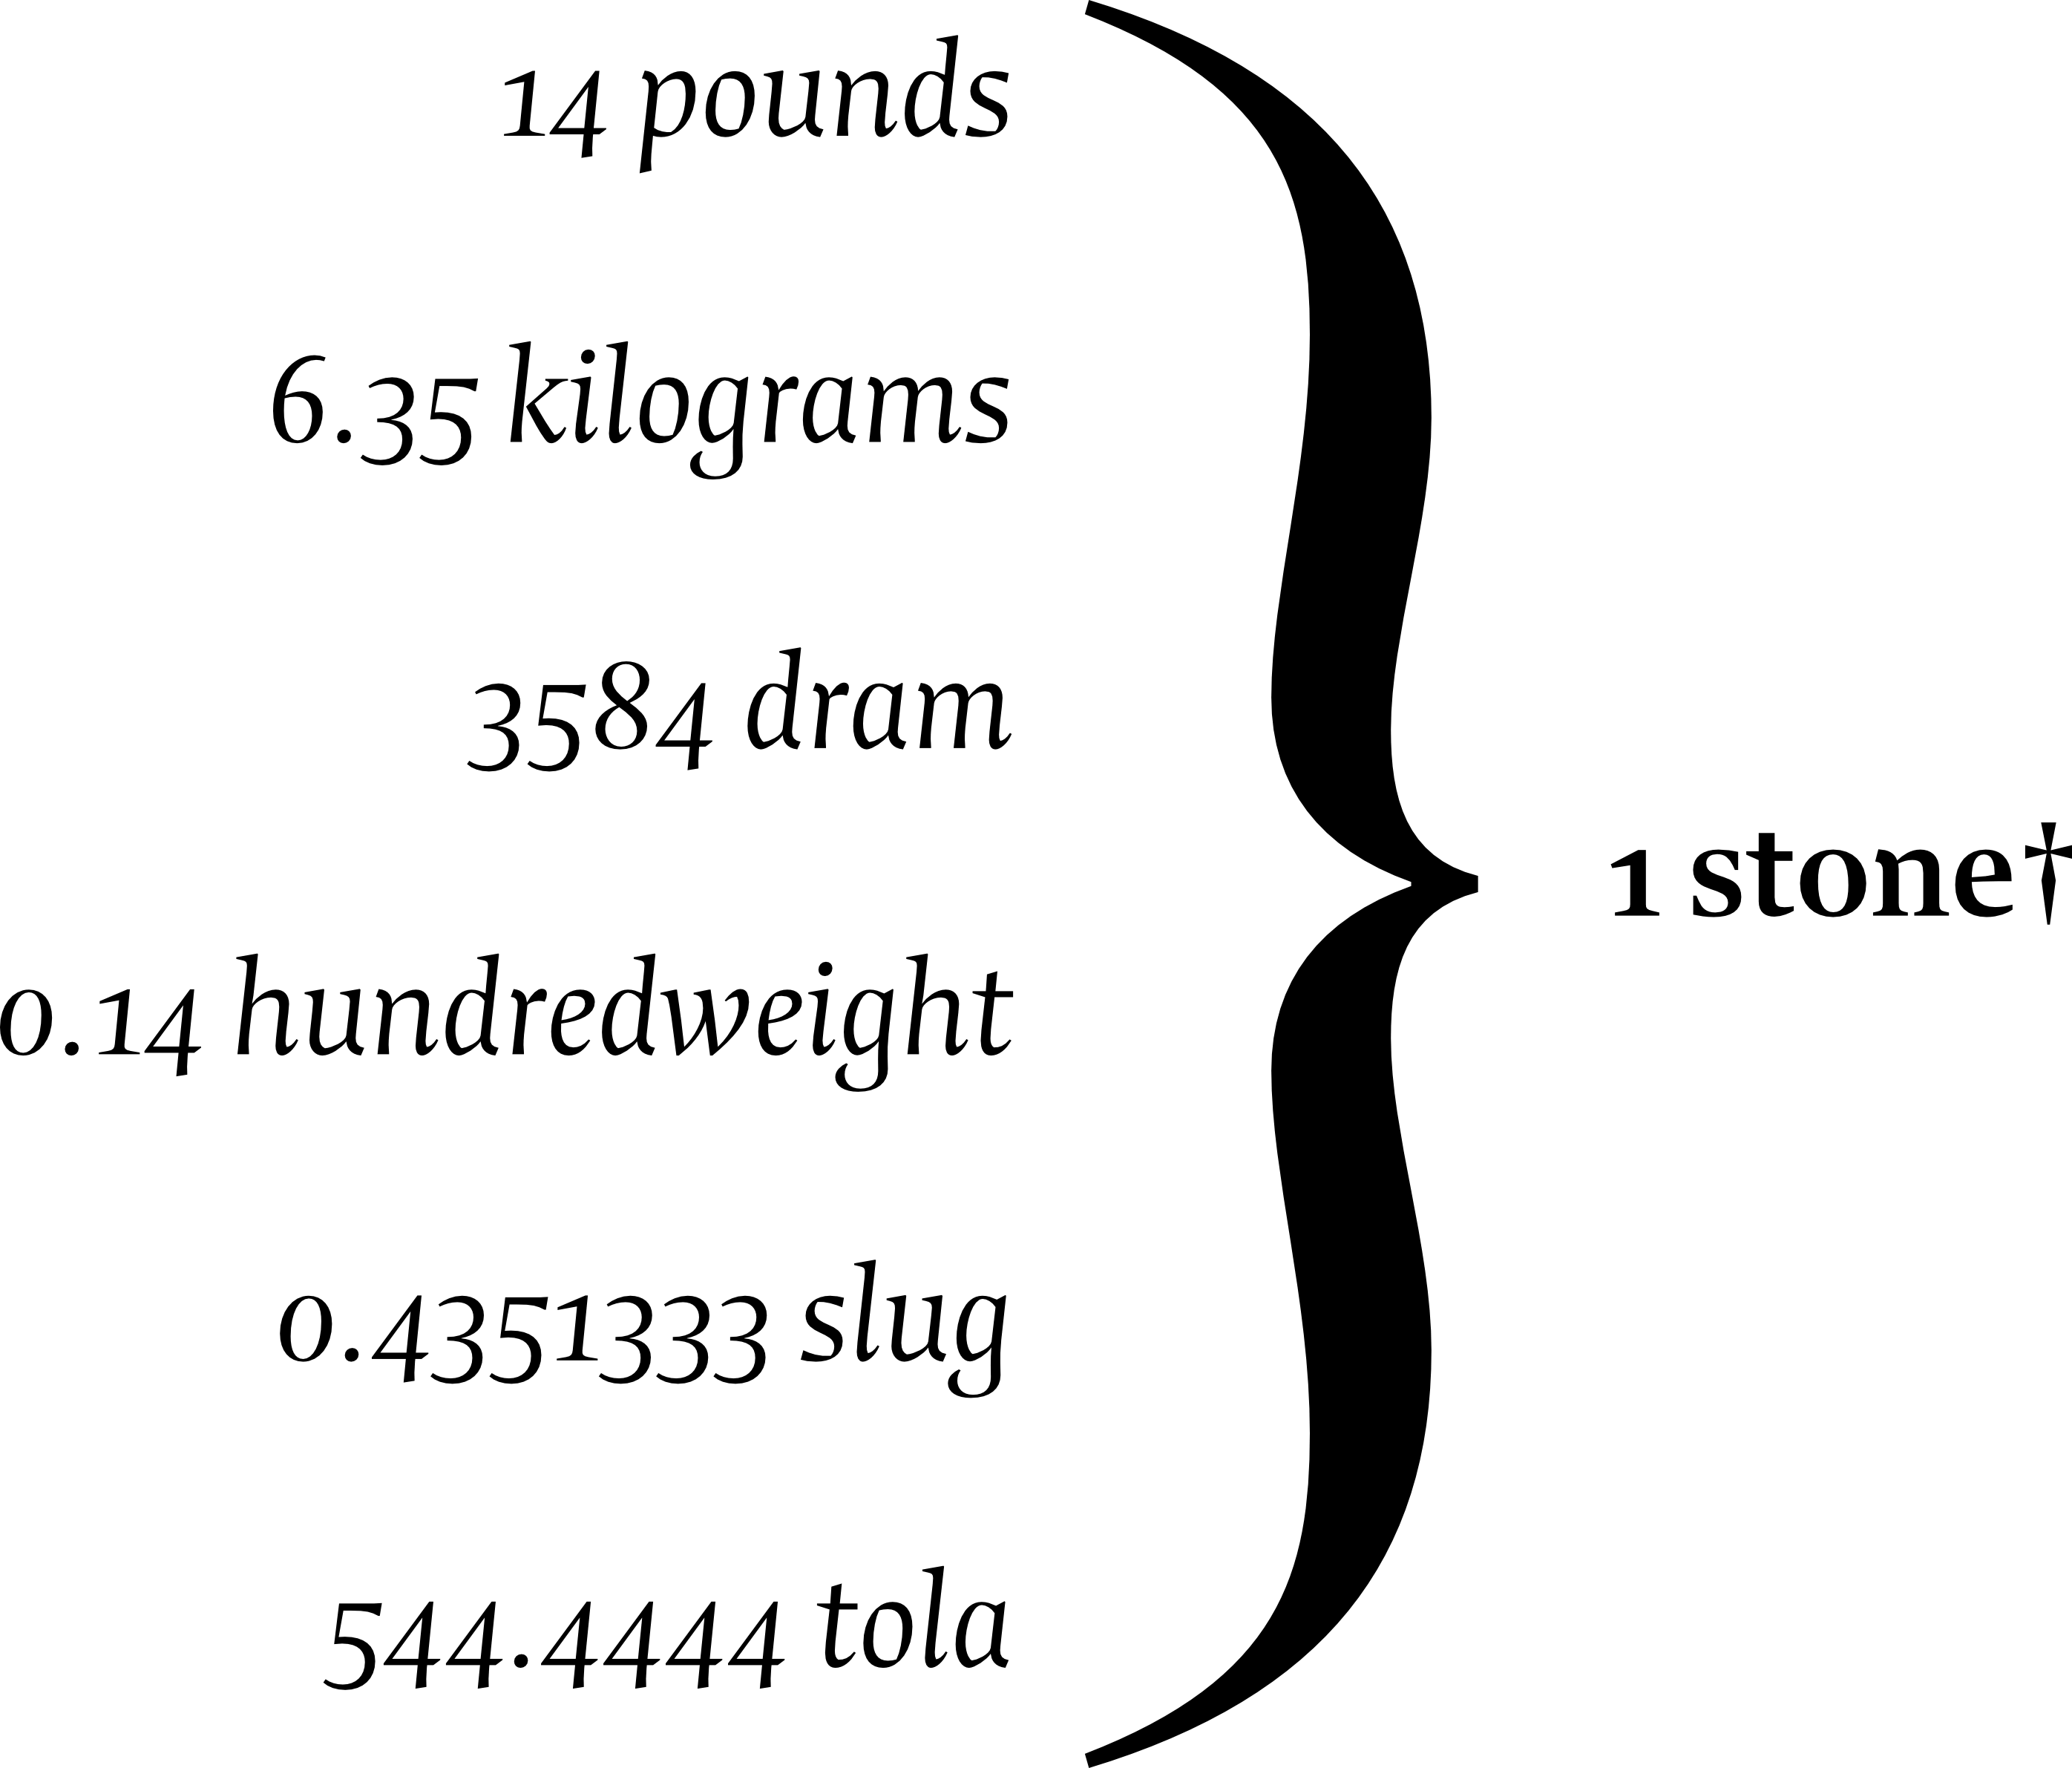 Image-weights